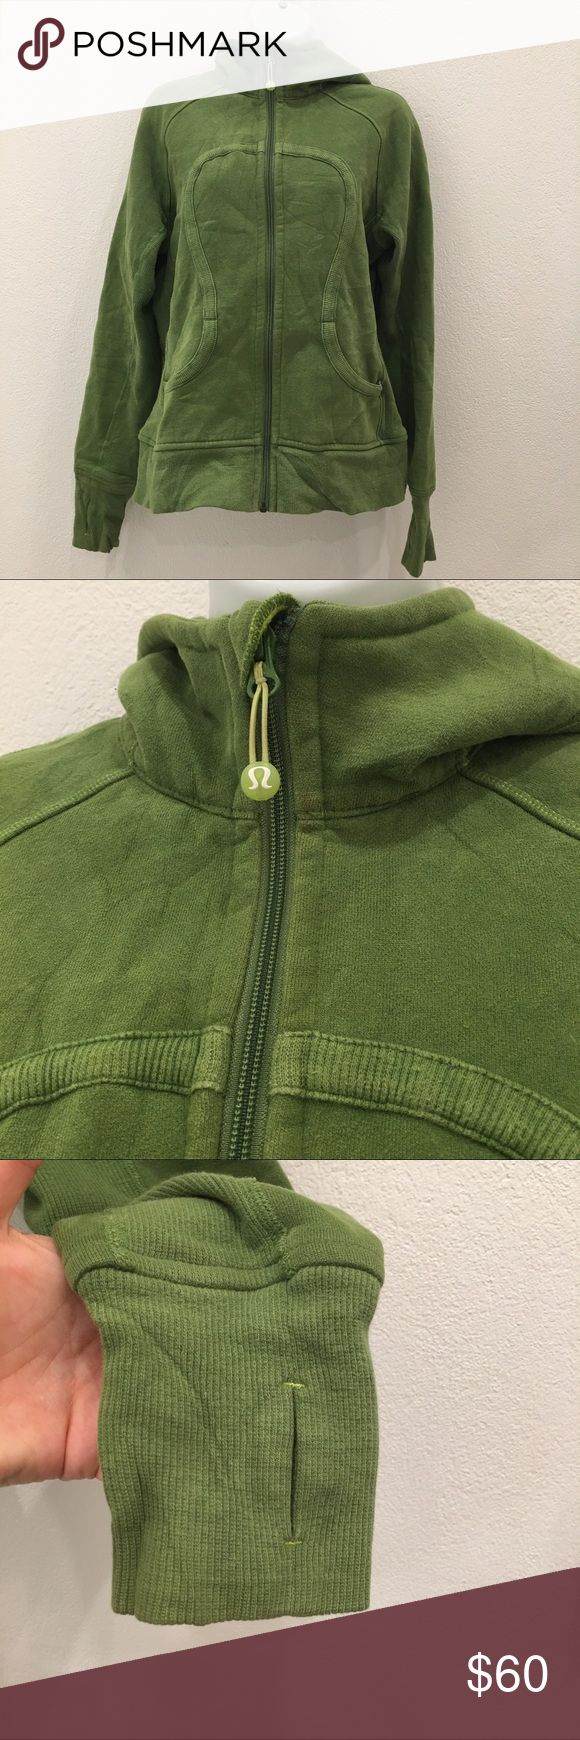 Lululemon Green Scuba Hoodie Jacket size 8 Preowned authentic Lululemon Green Scuba Hoodie Jacket size 8. Has thumbholes. Please look at pictures for better reference. Happy shopping!! lululemon athletica Tops Sweatshirts & Hoodies